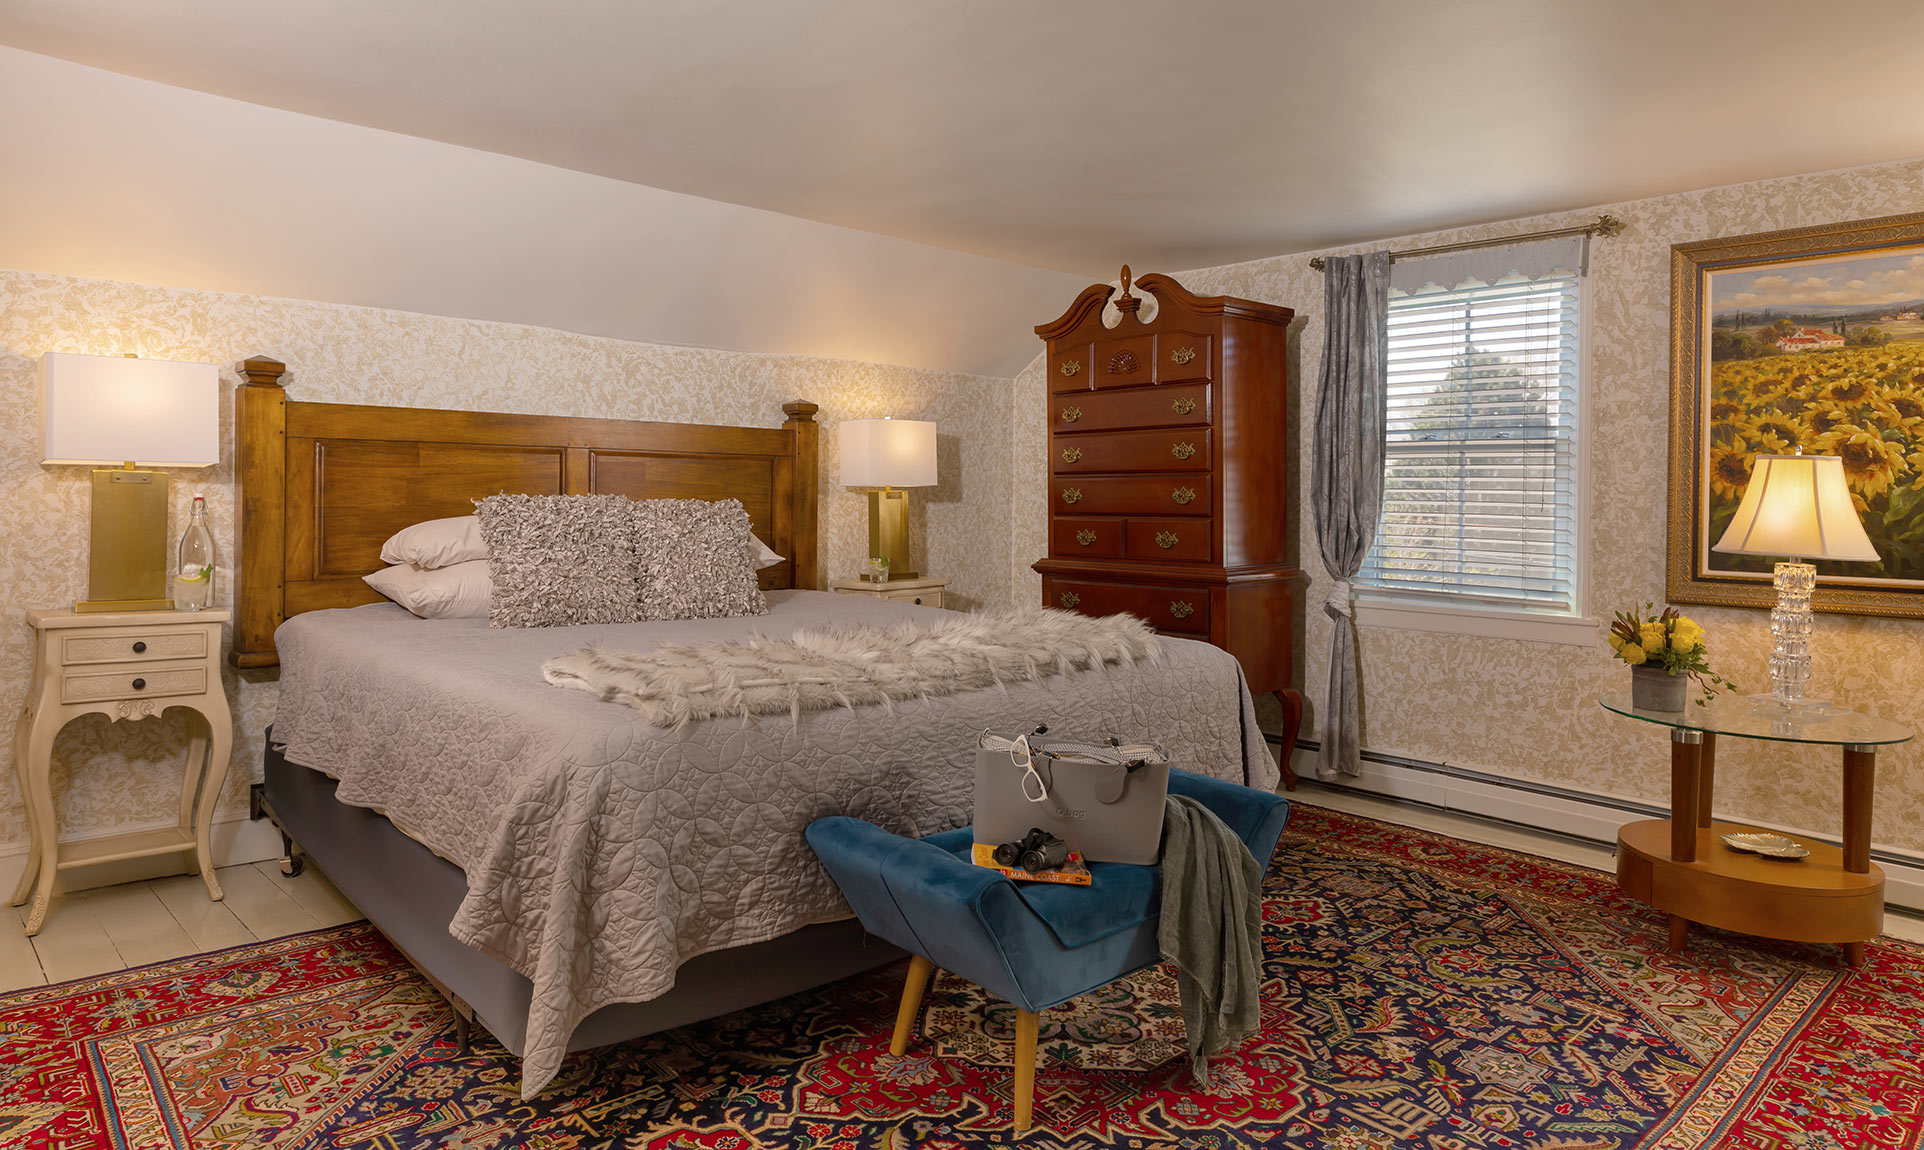 Bed and furniture in the Sunflower Room at our Camden B&B